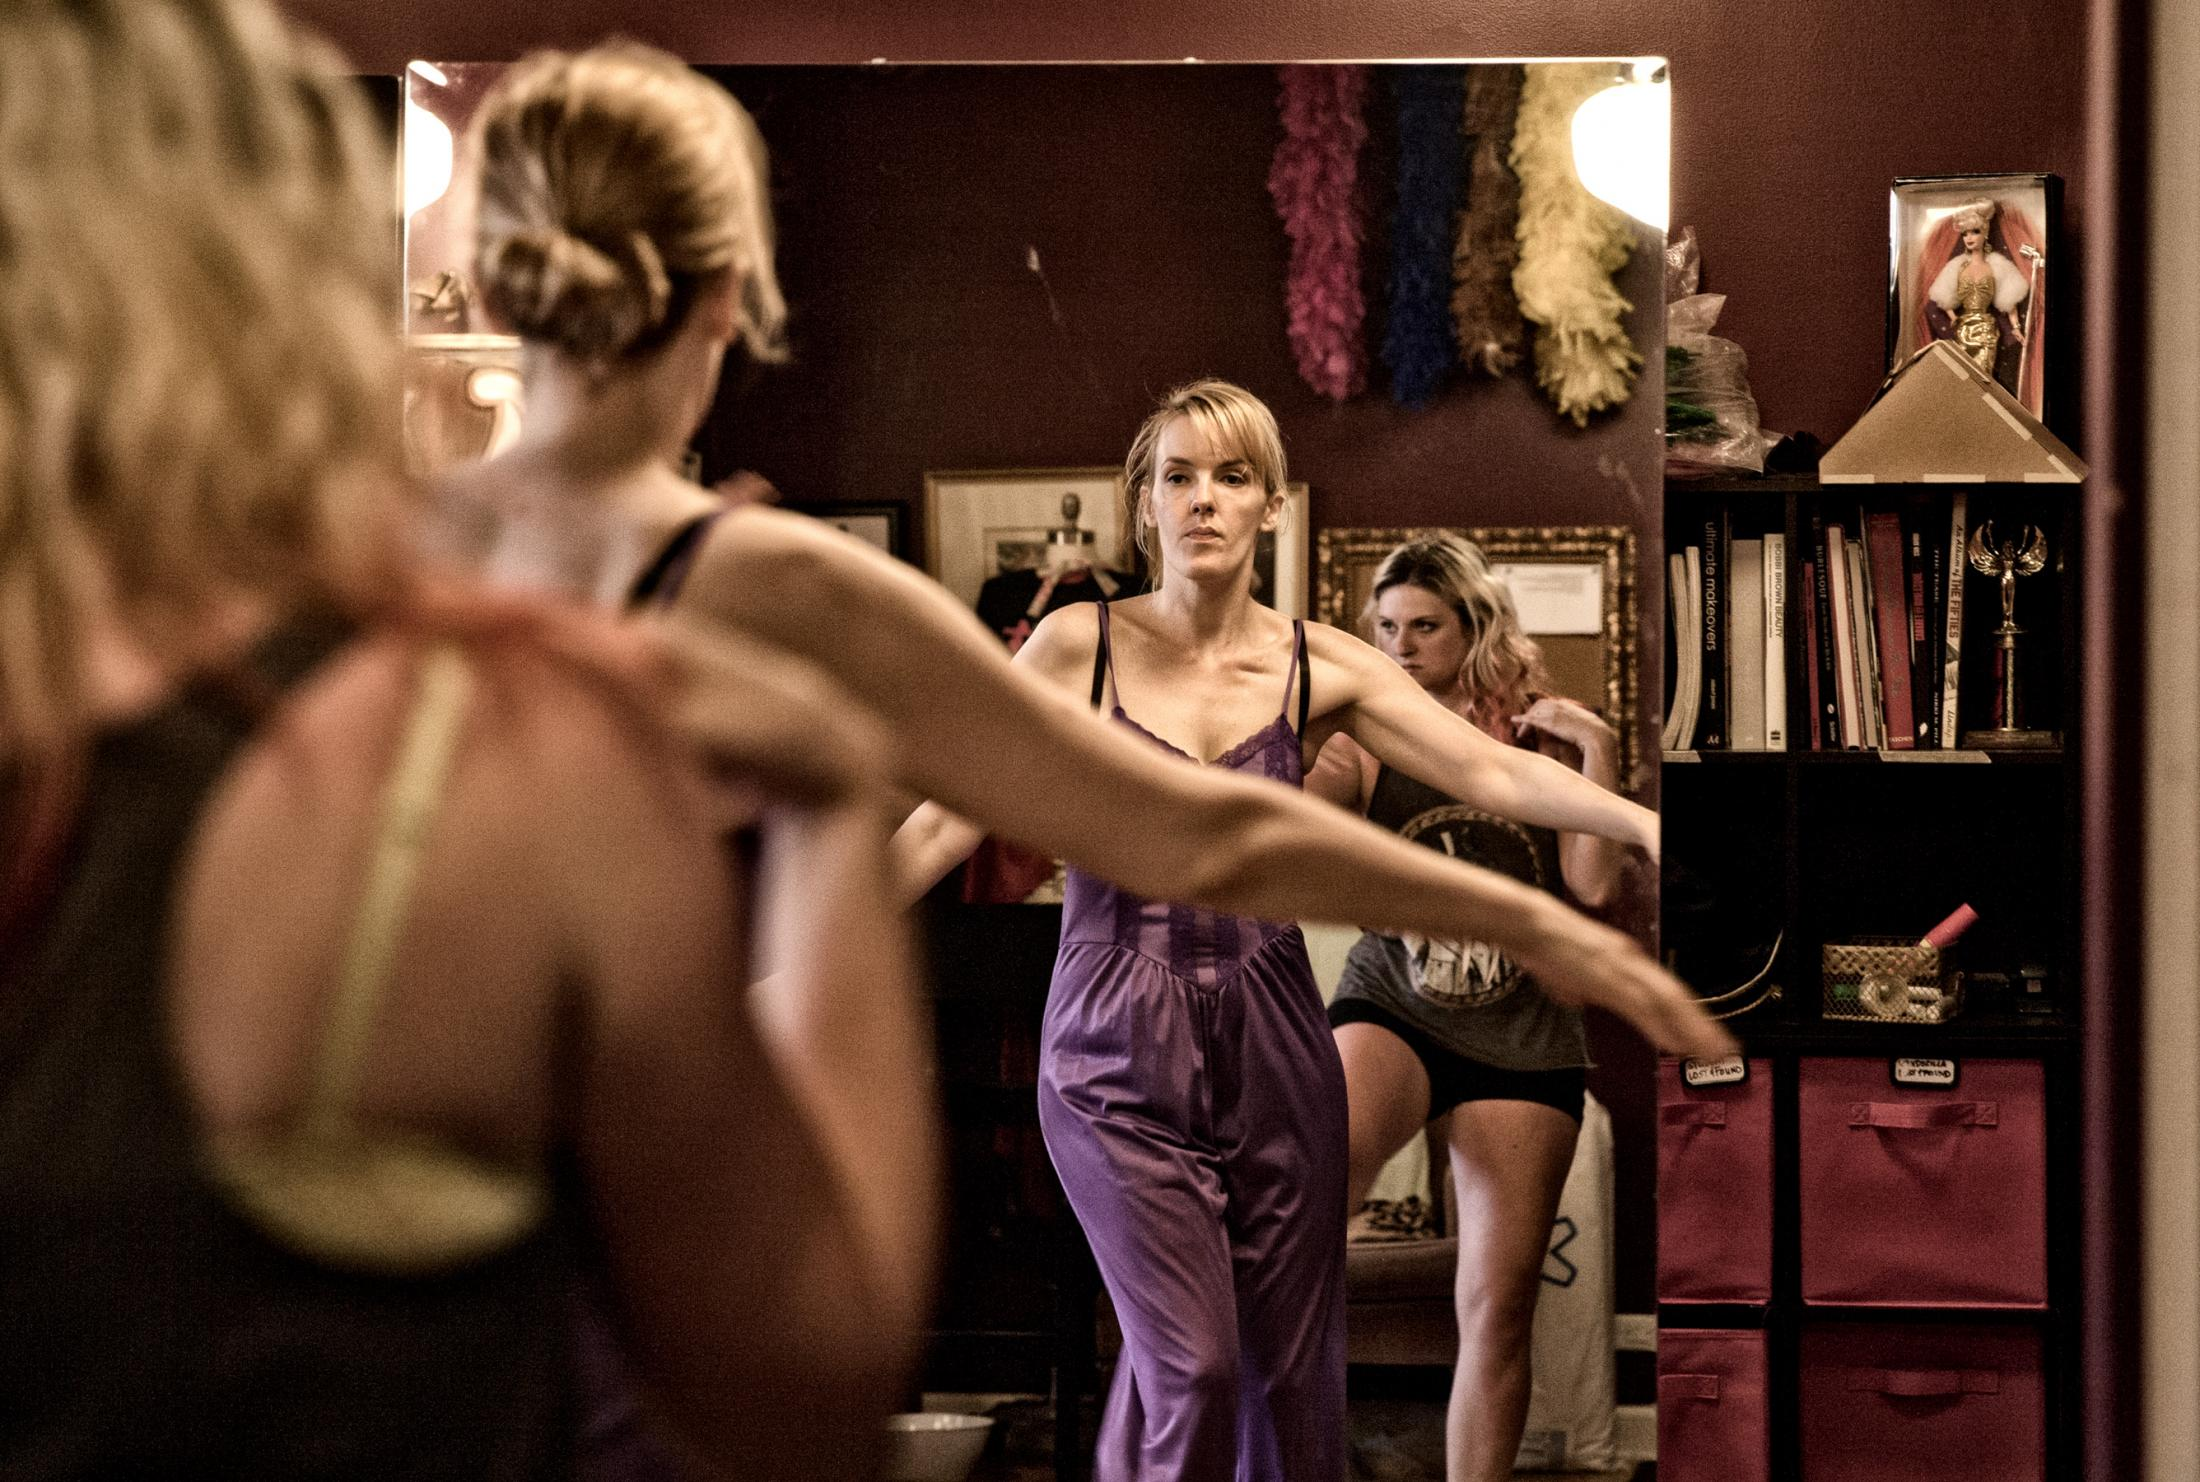 Training and fitness is important and Red hot Annie trains and practices new acts in her studio along with other cast members.